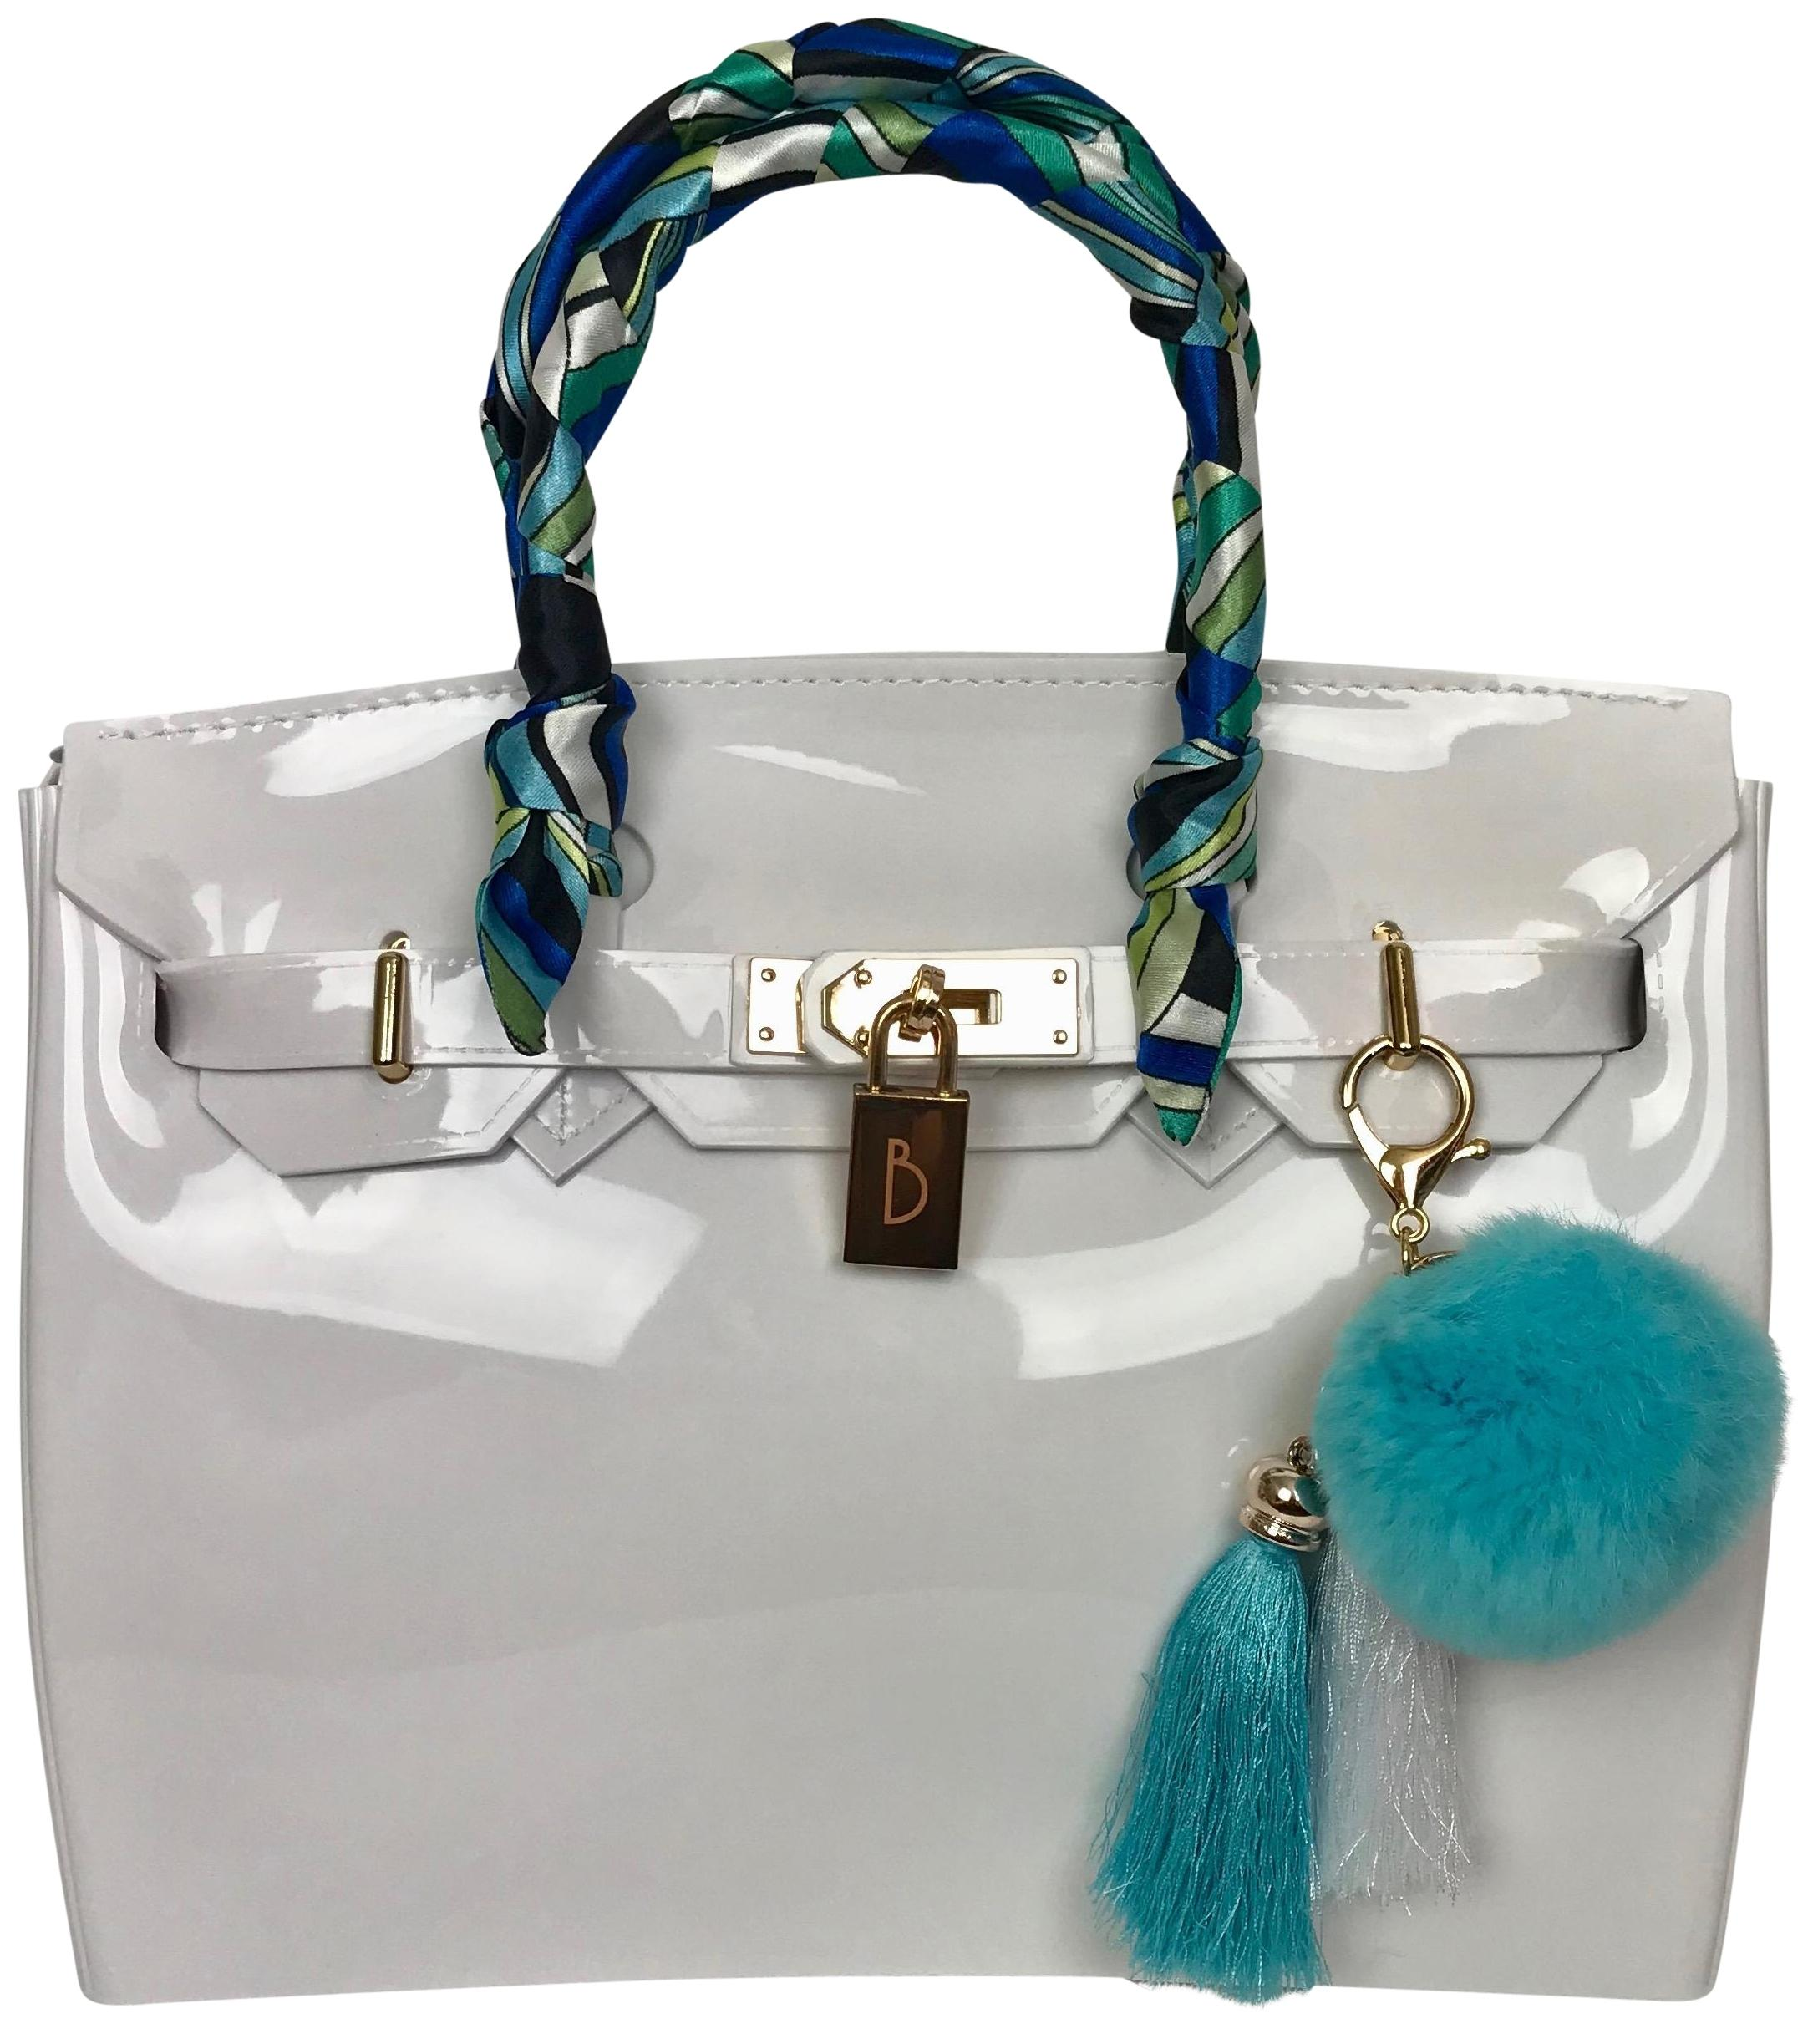 9fabab8e19b8 ... low price jelly couture hermes birkin beach pvc tote in white c79ef  c27d7